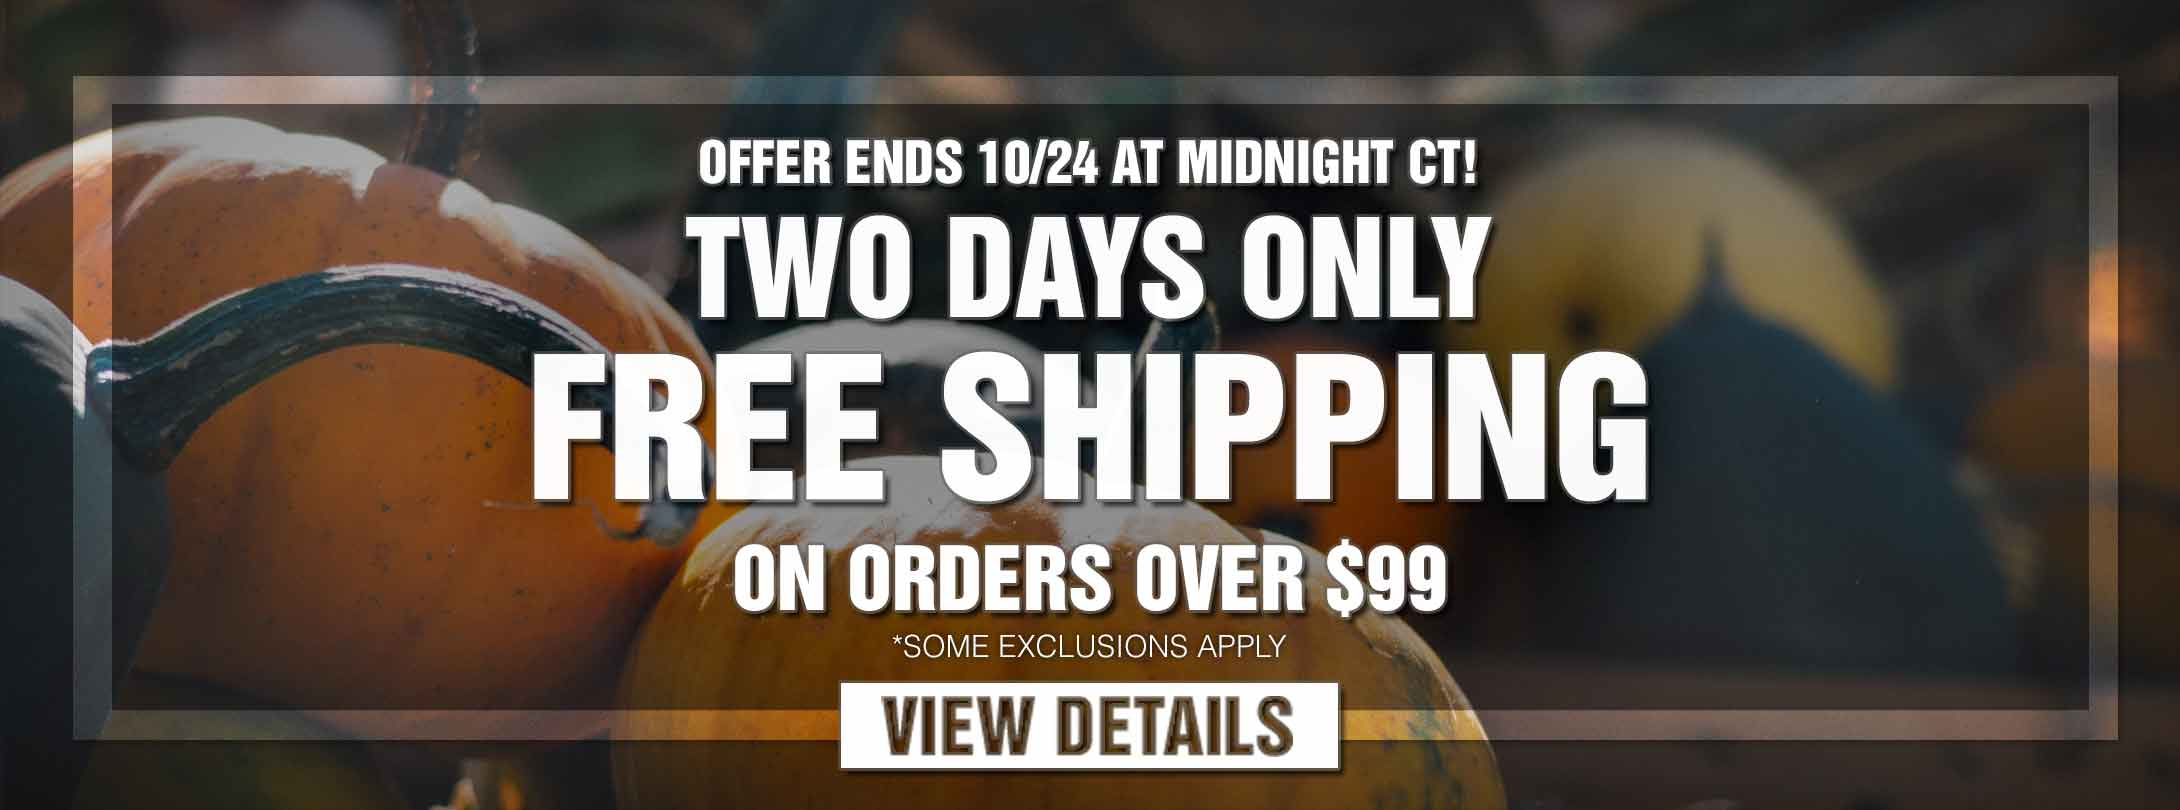 Two Days Only! Free Shipping on Orders Over $99